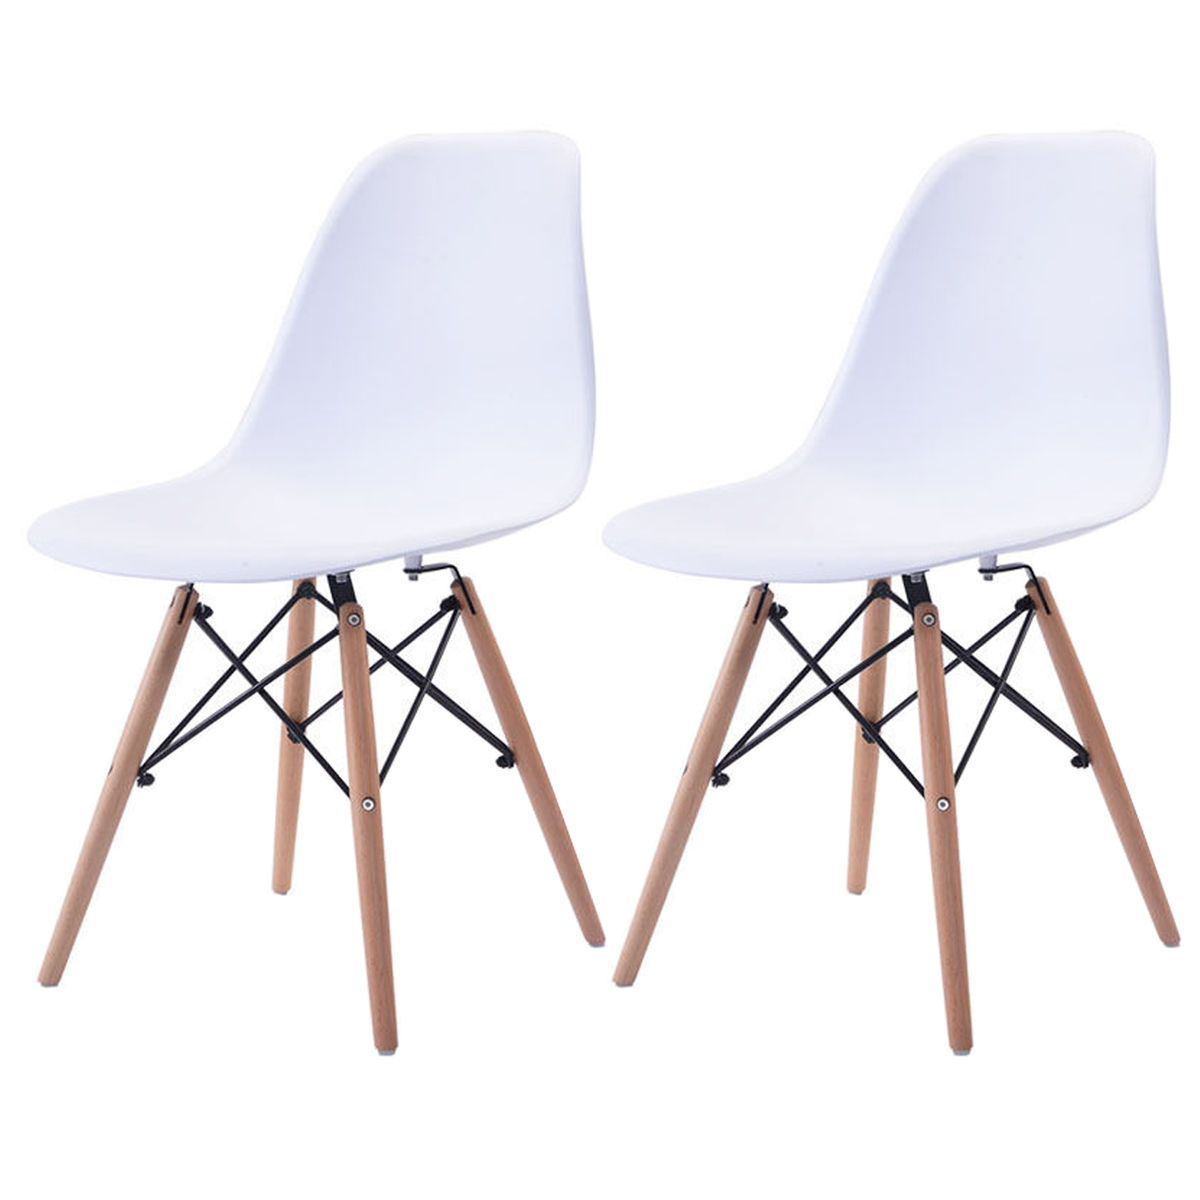 Giantex Set of 2pcs Mid Century ABS Dining Chair Modern Wood Legs Side Chairs White Living Room Furniture HW54094WH mid century presidential solid oak wood dining chair armchair upholstery seat dining room furniture modern arm chair for home